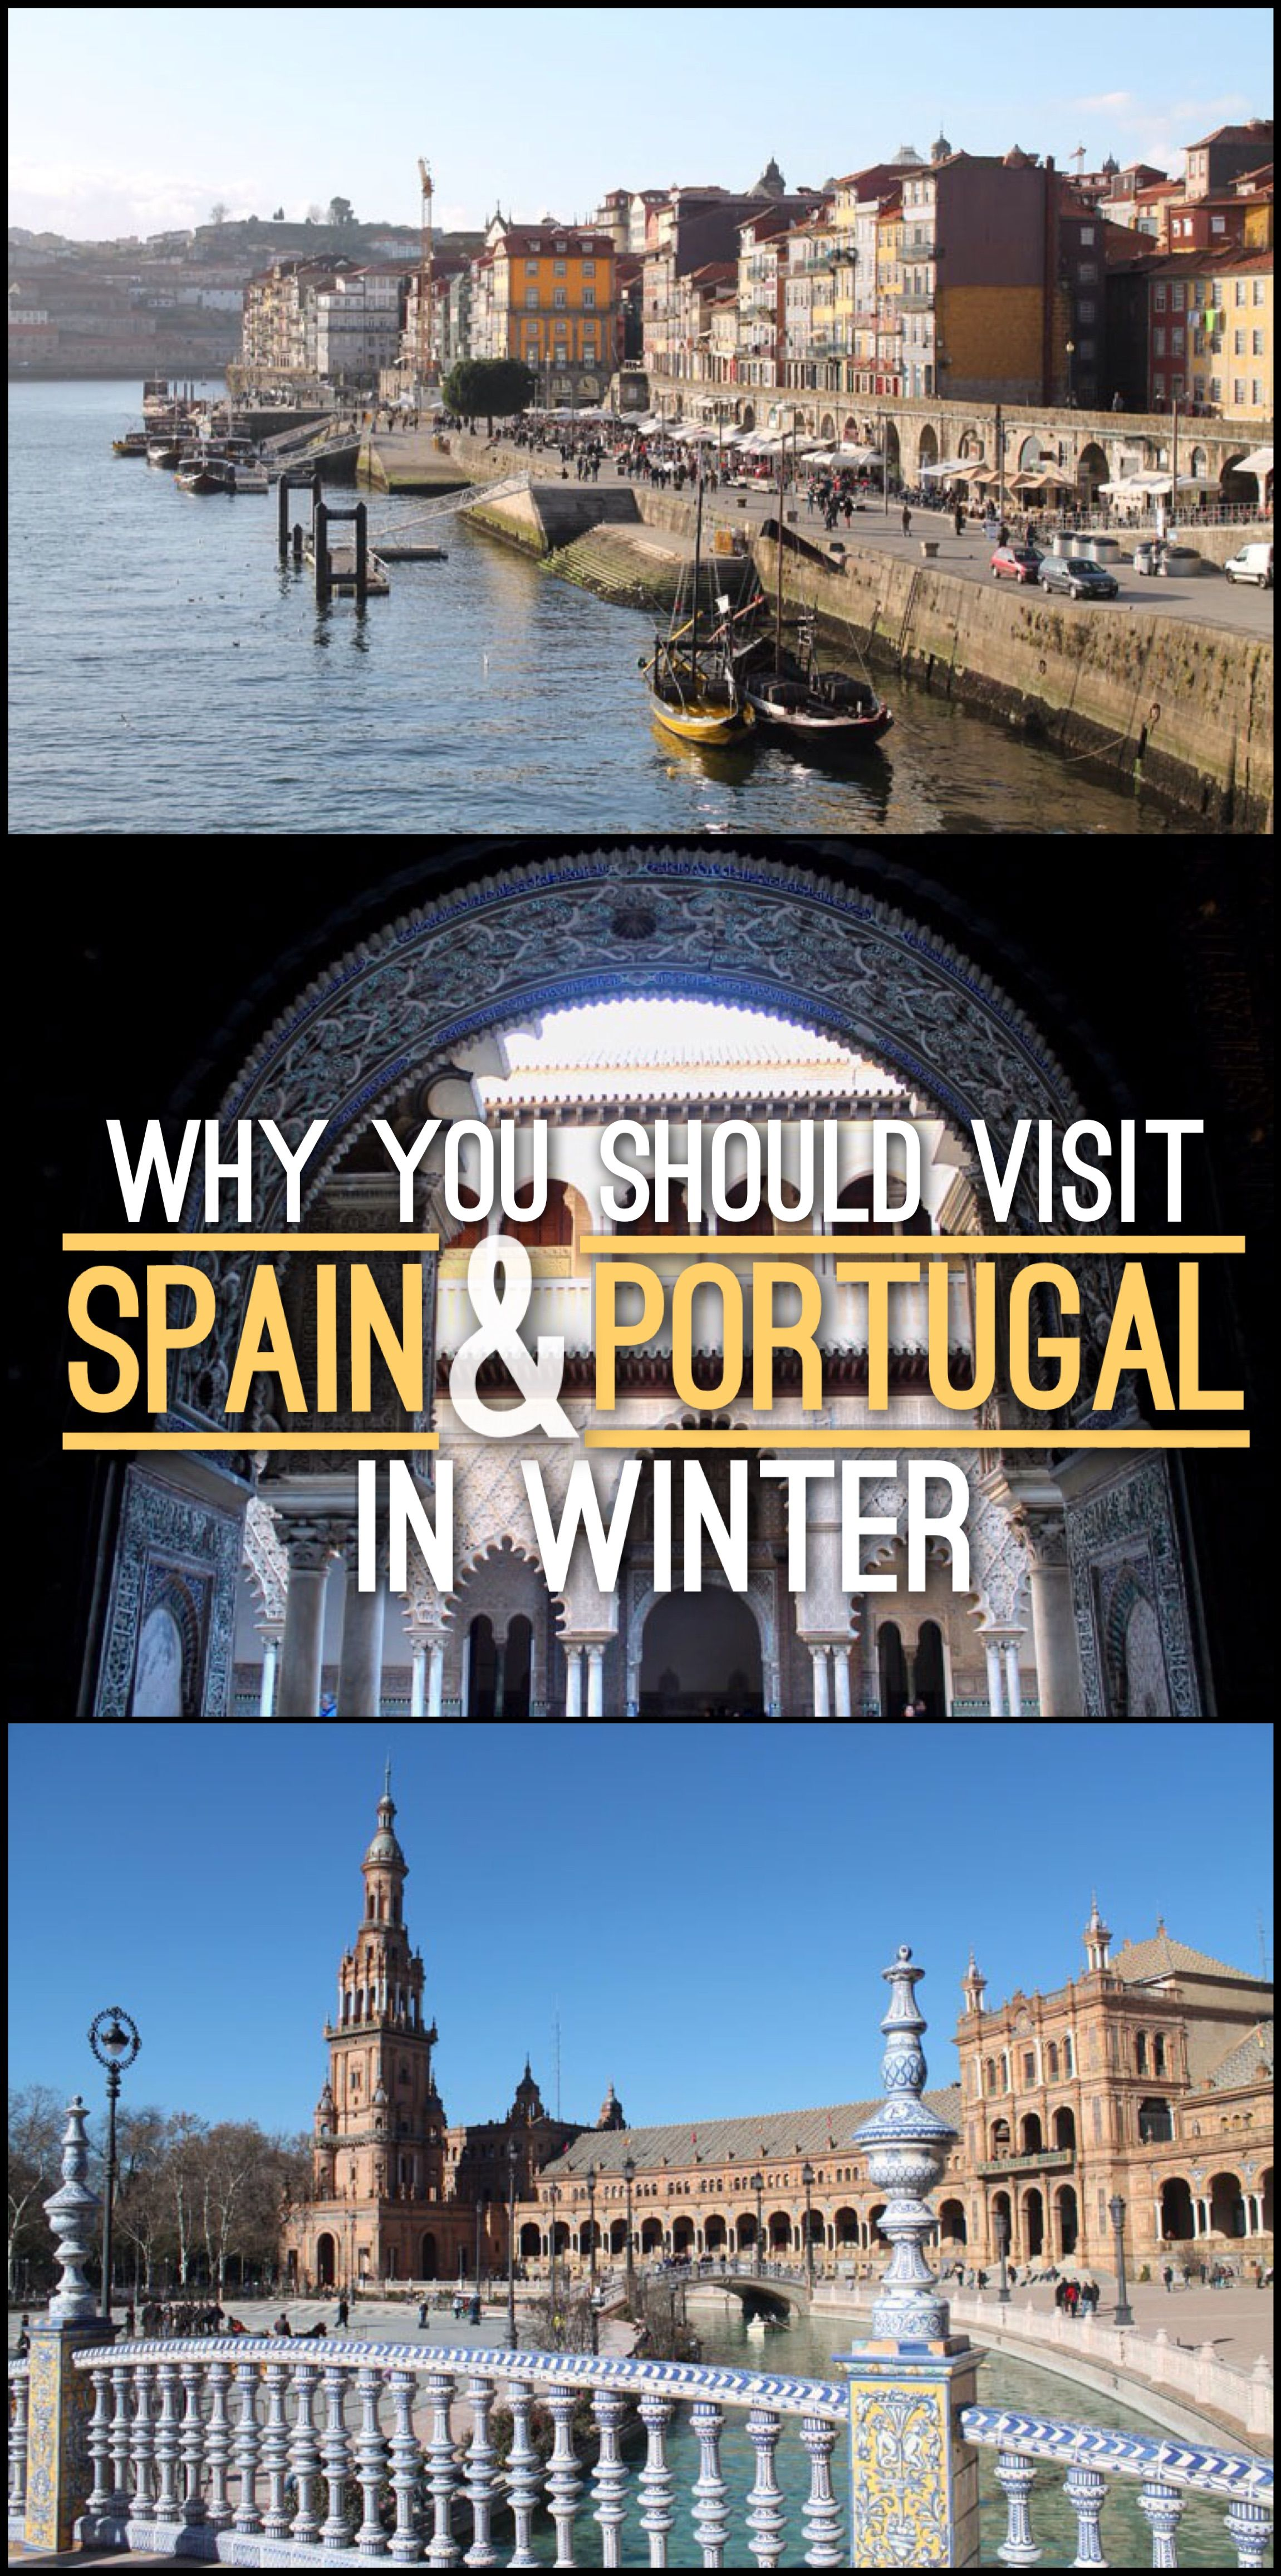 YOU would like to visit Spain) 69